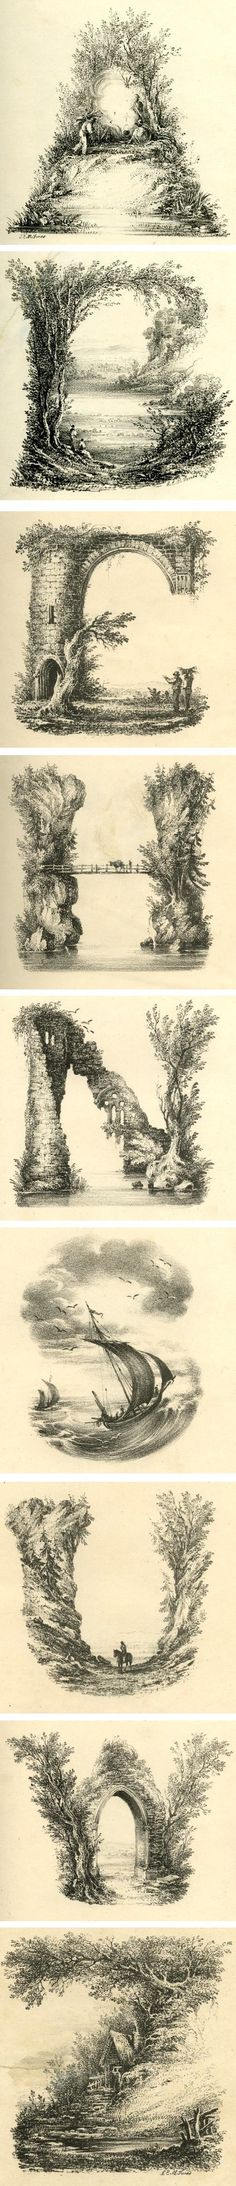 Landscape alphabet, drawn by artist L.E.M. Jones then printed. Early XIXth century.